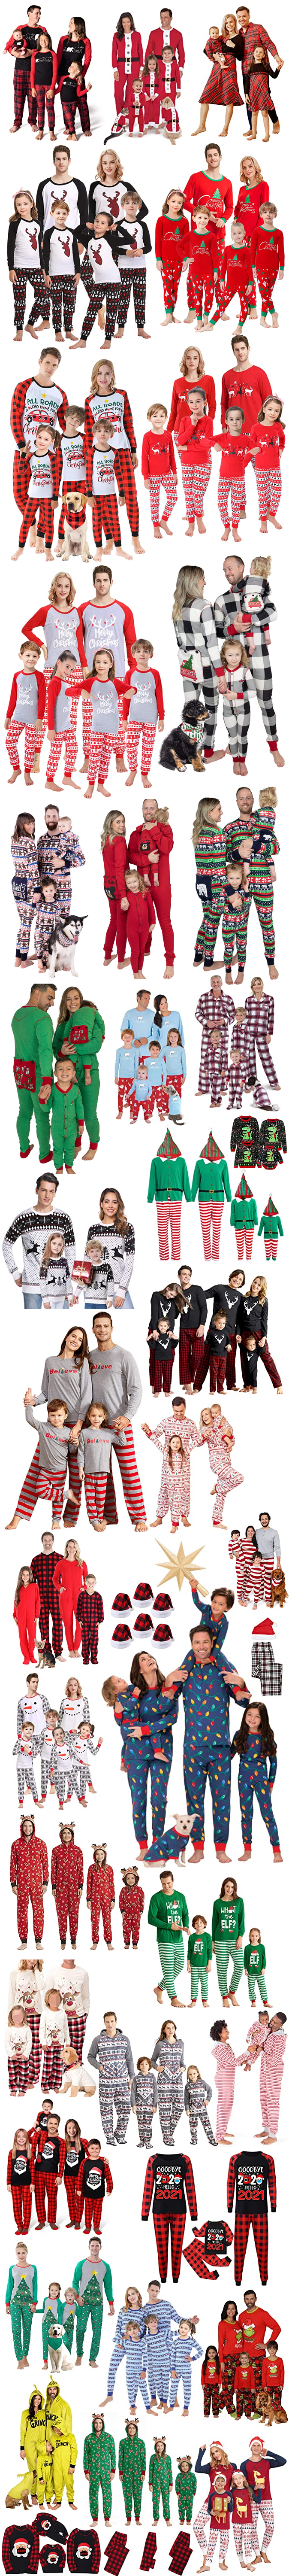 MATCHING FAMILY CHRISTMAS ONESIES PAJAMAS SWEATERS HATS AND OUTFITS